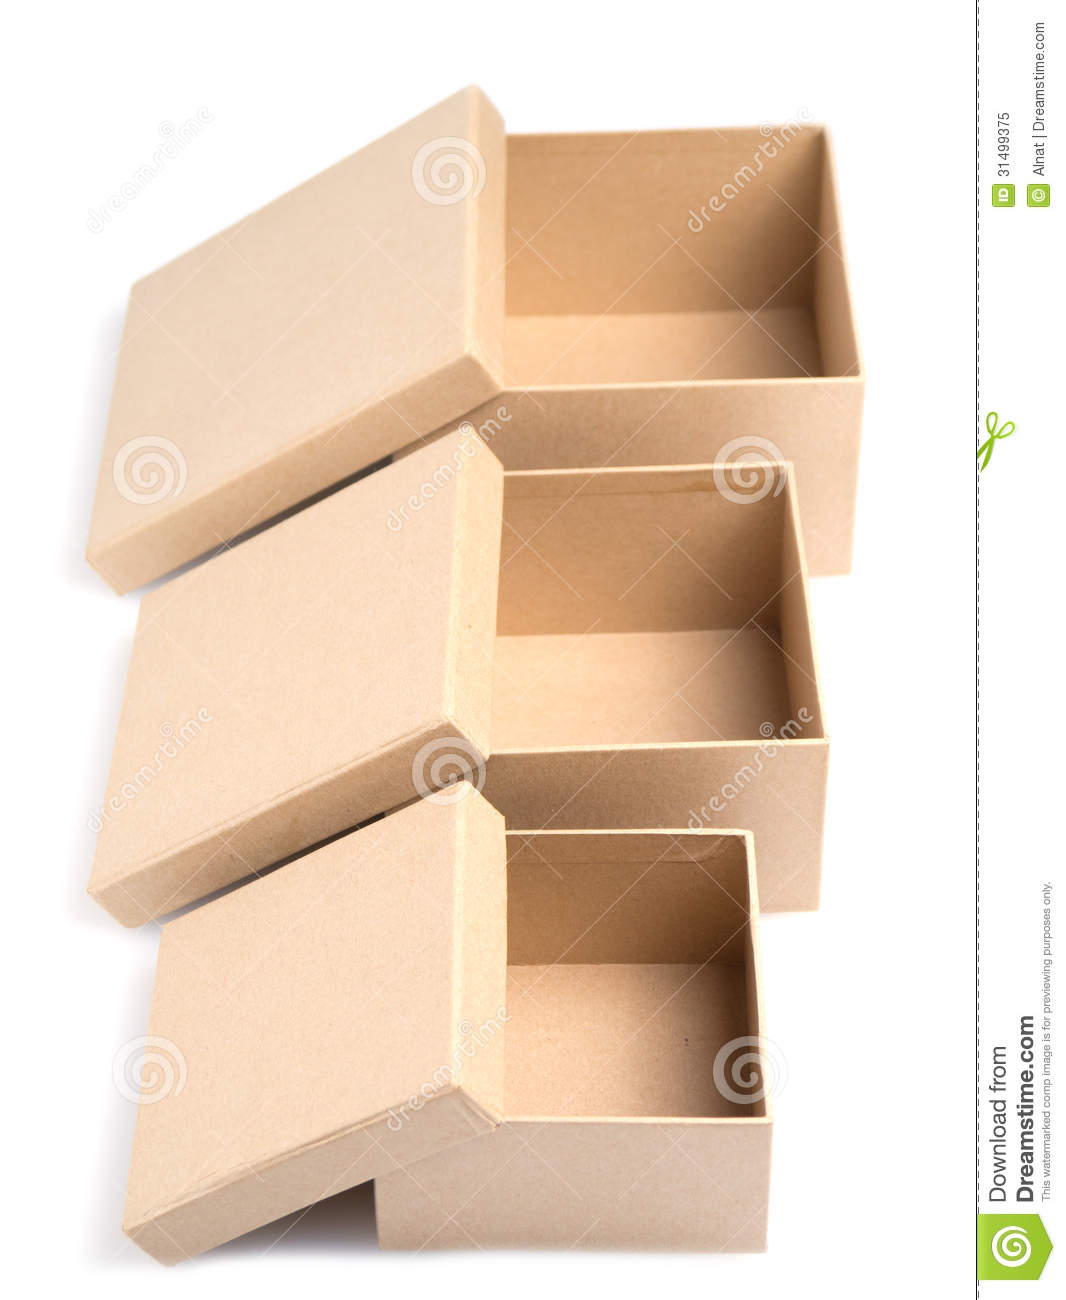 Big W Photo Sizes Three Boxes Stock Image Image Of Background Empty Small